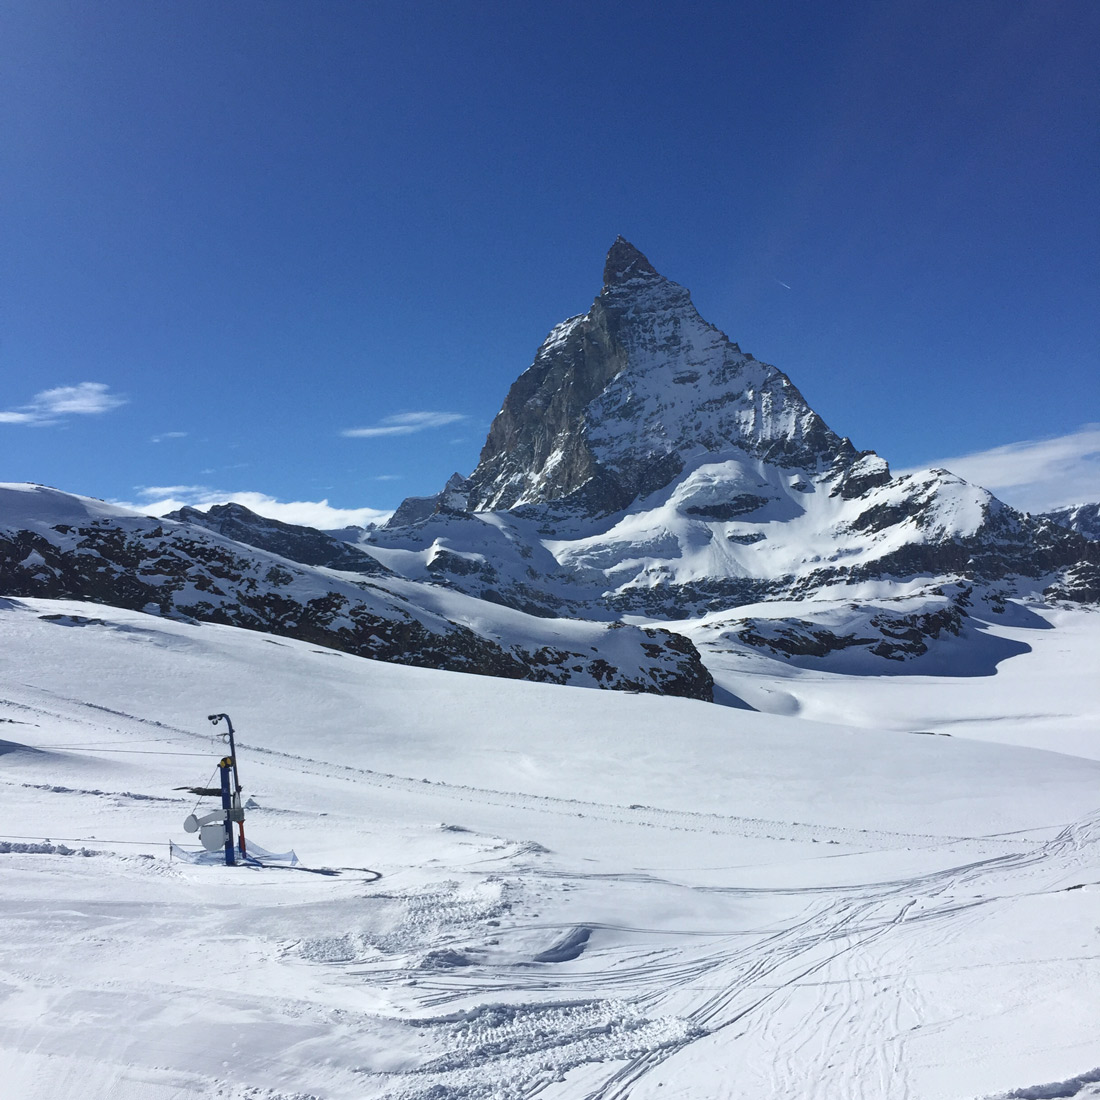 Bag-at-you---fashion-blog---Ski-from-Zermatt---Matterhorn